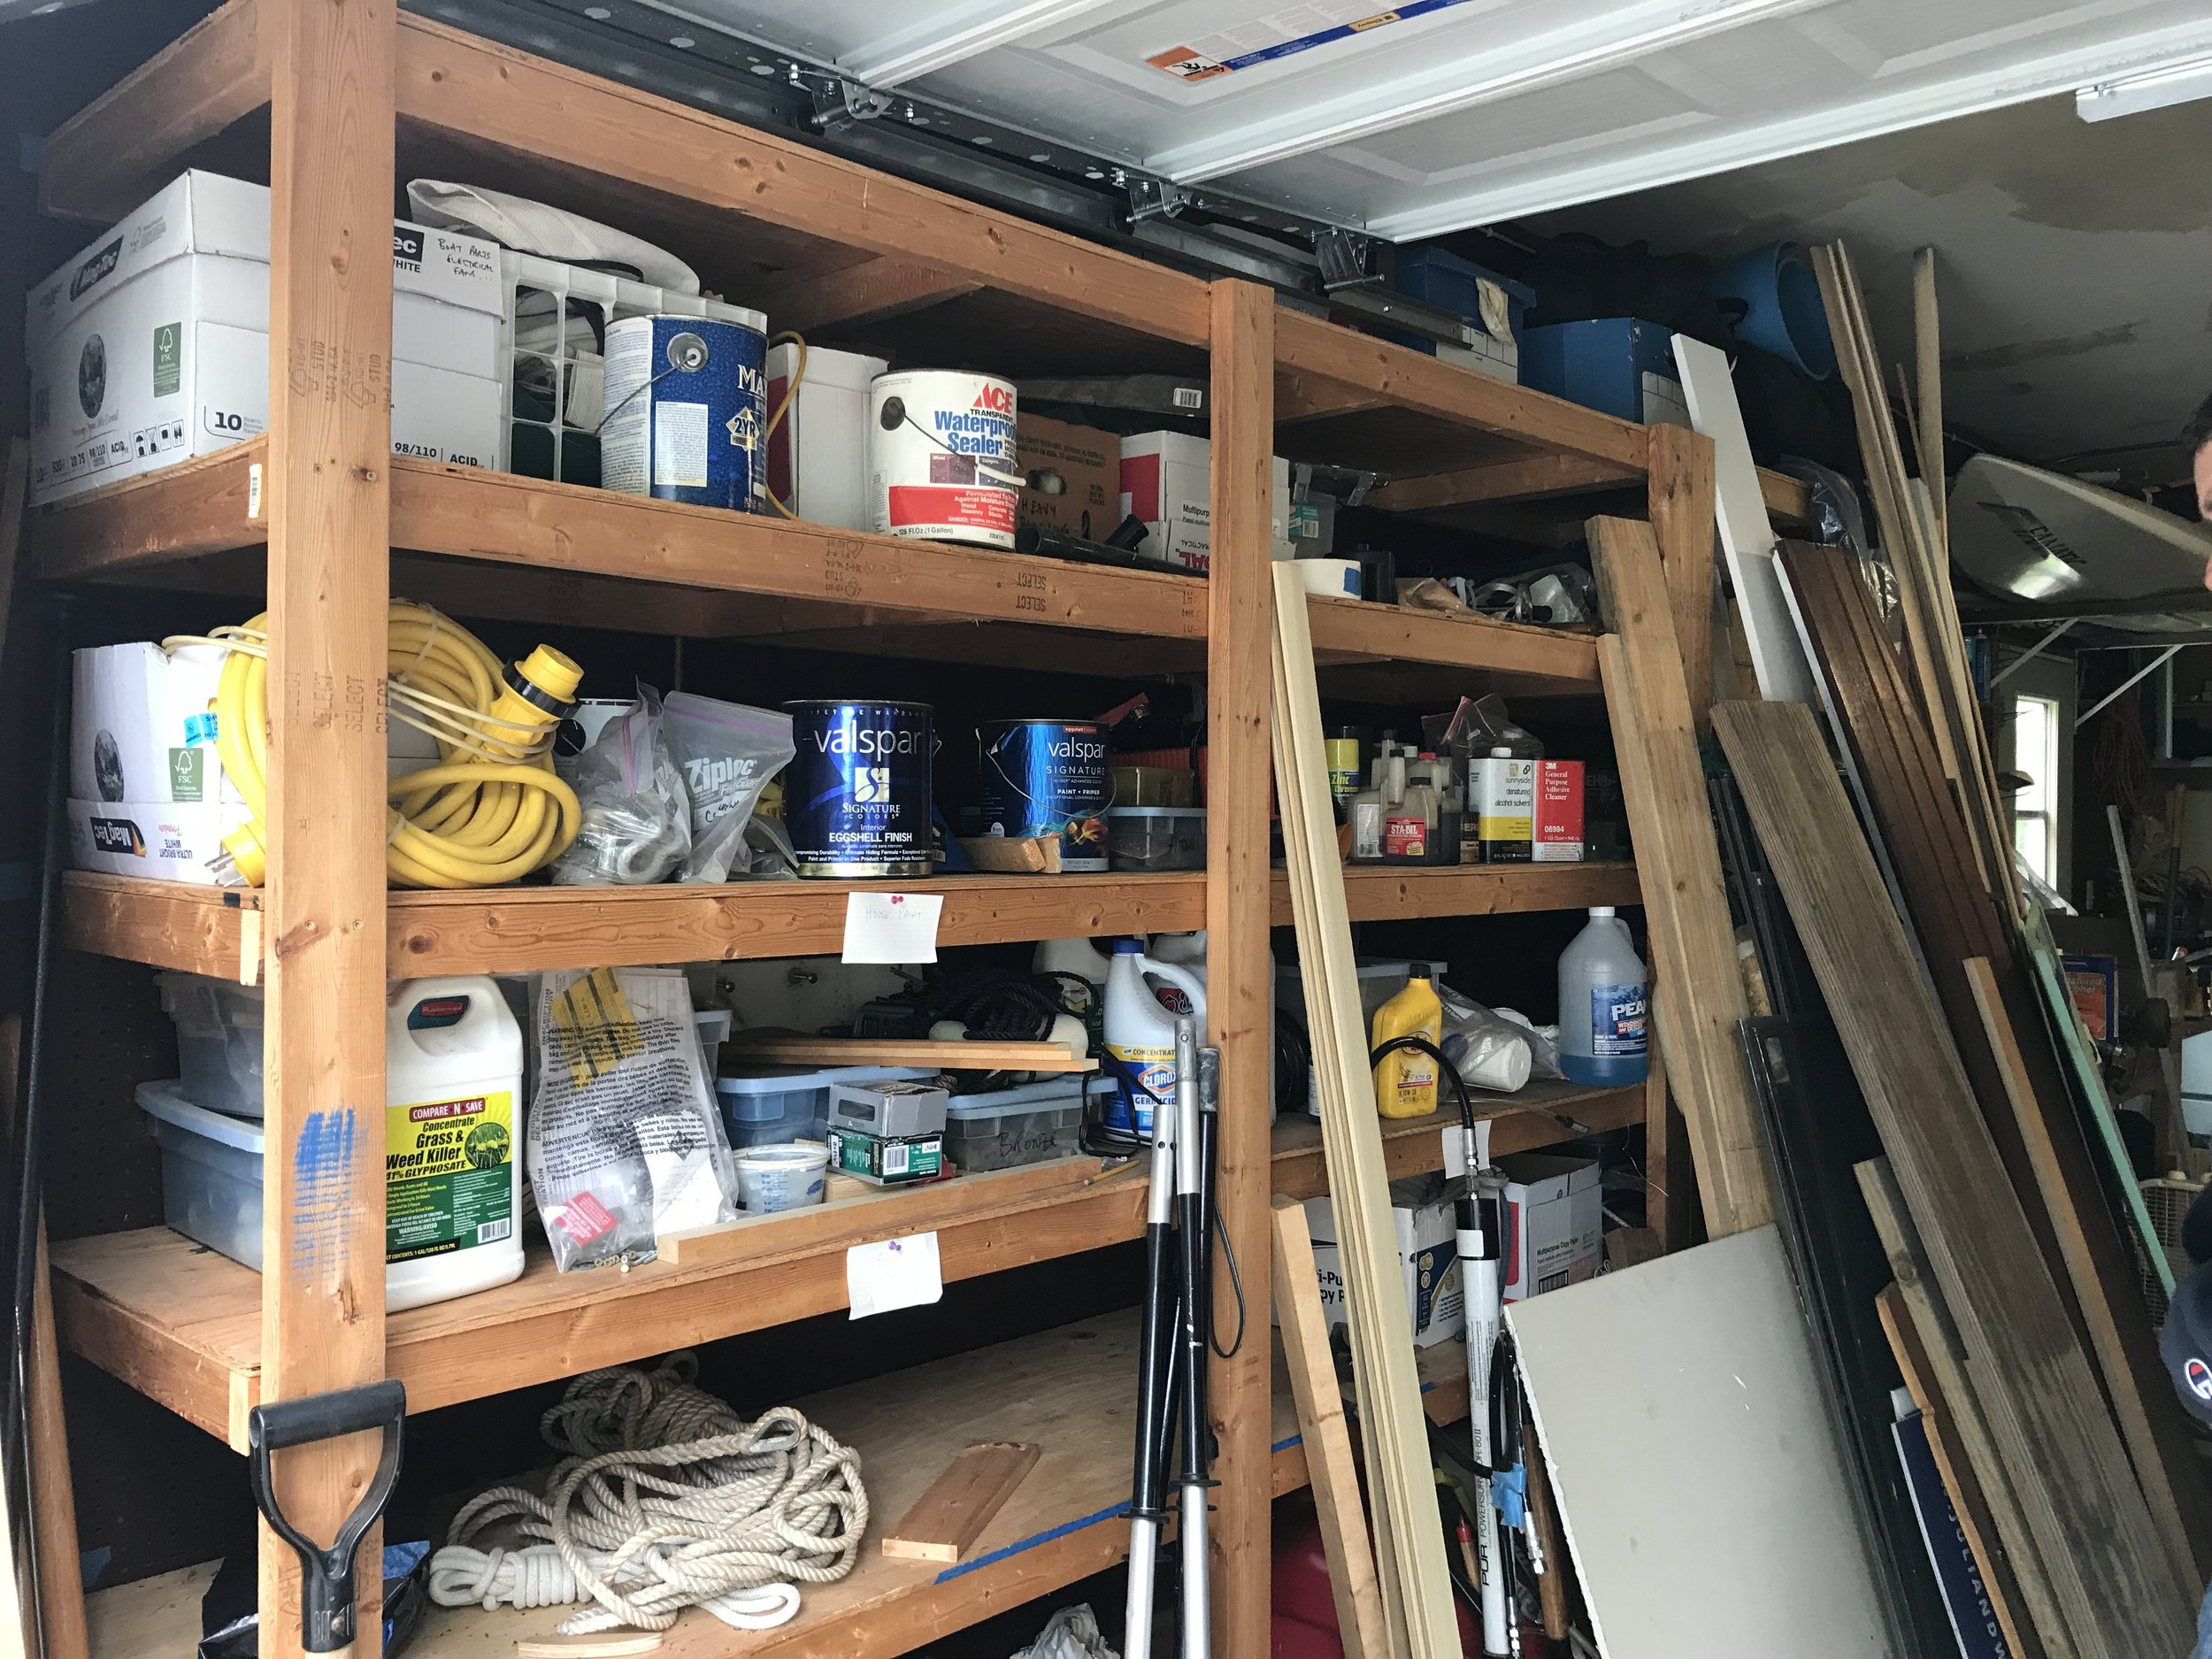 One shelf unit, AFTER a round of organizing.